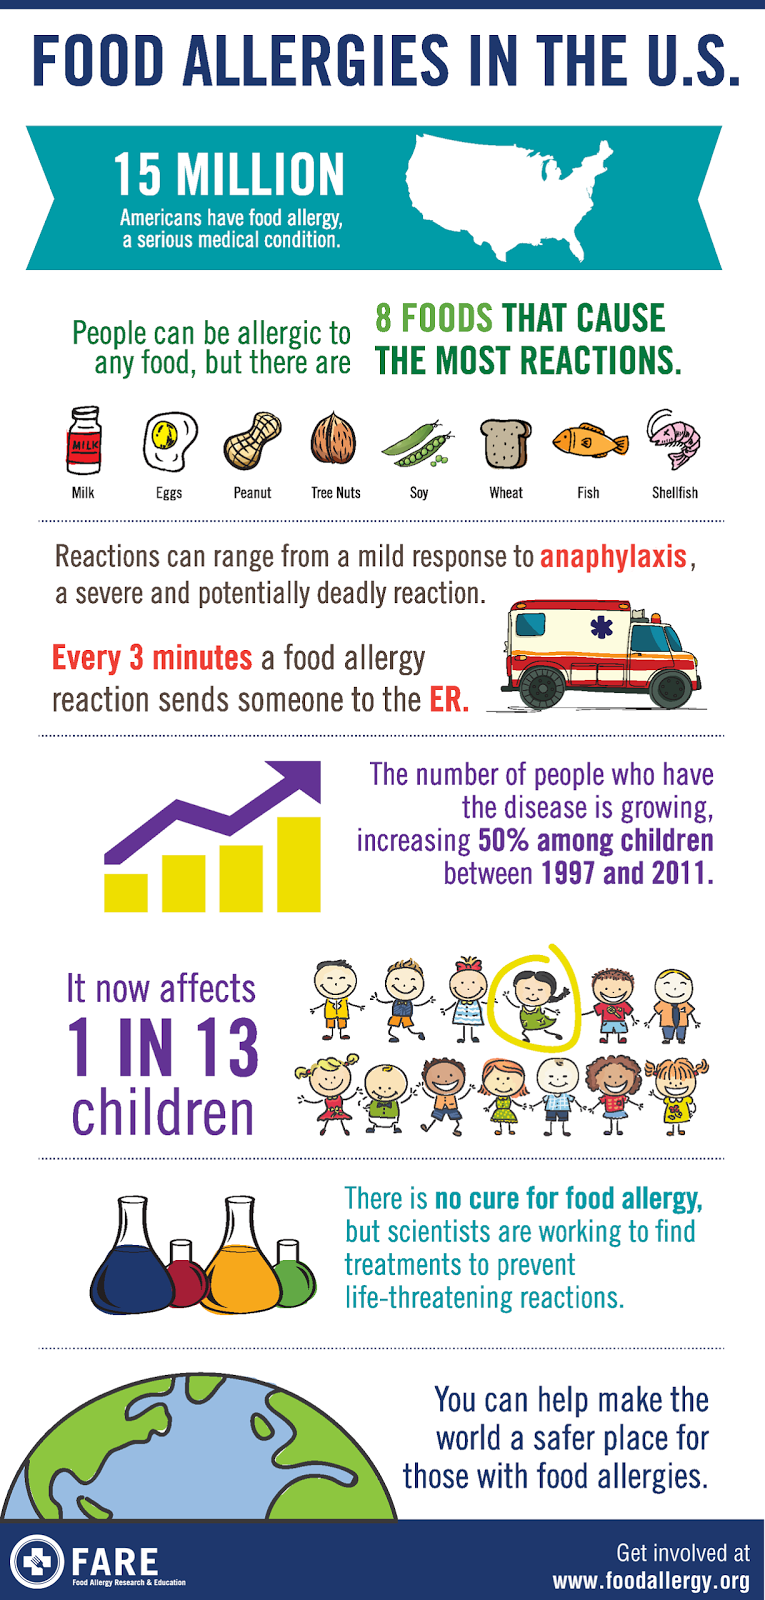 Food Allergy Info-Graphic, FARE